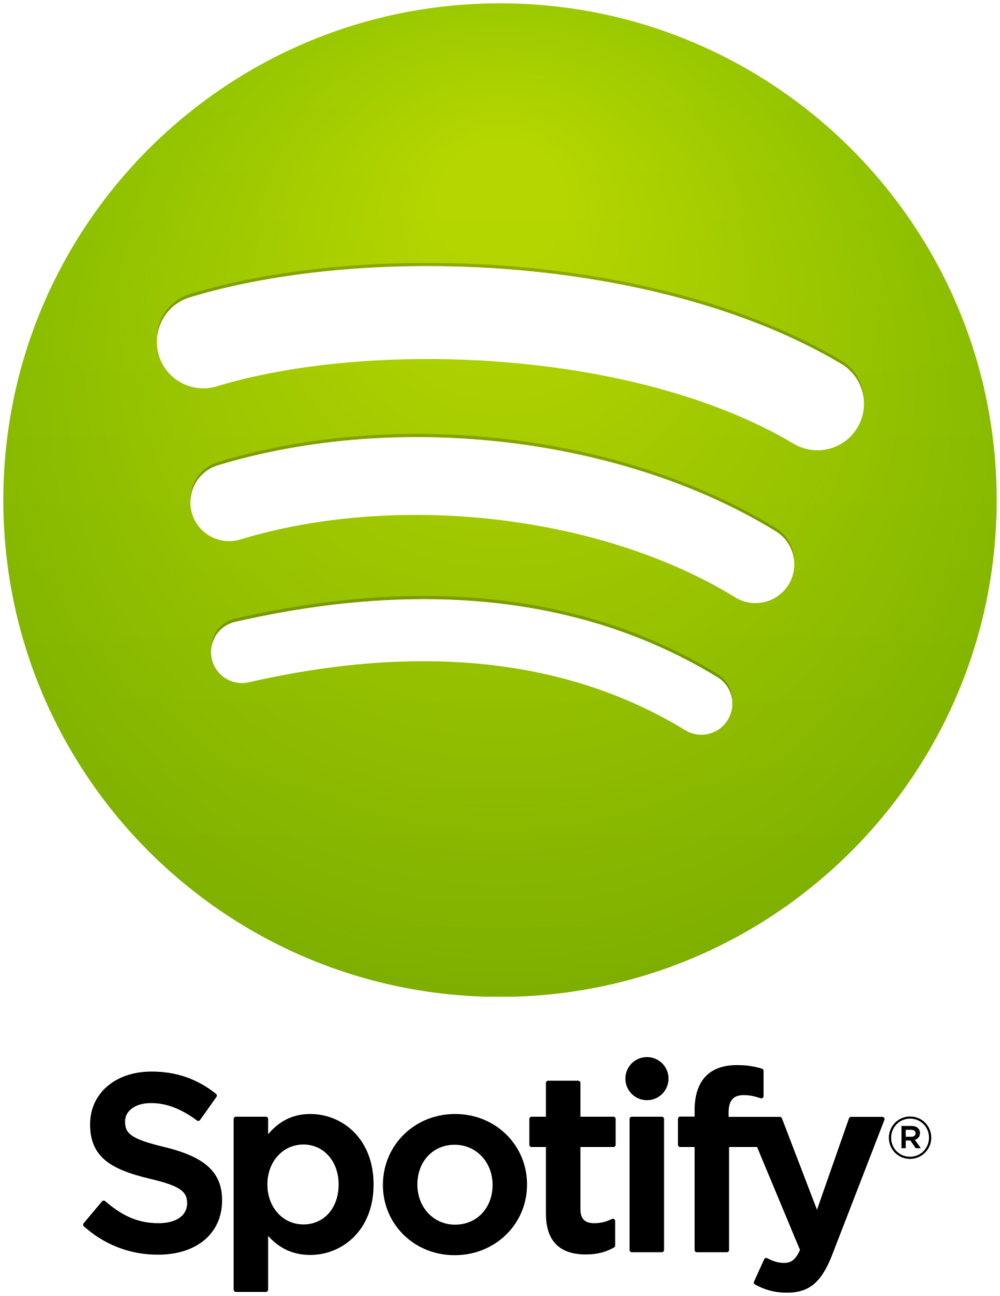 spotify-logo-primary-vertical-light-background-rgb.png